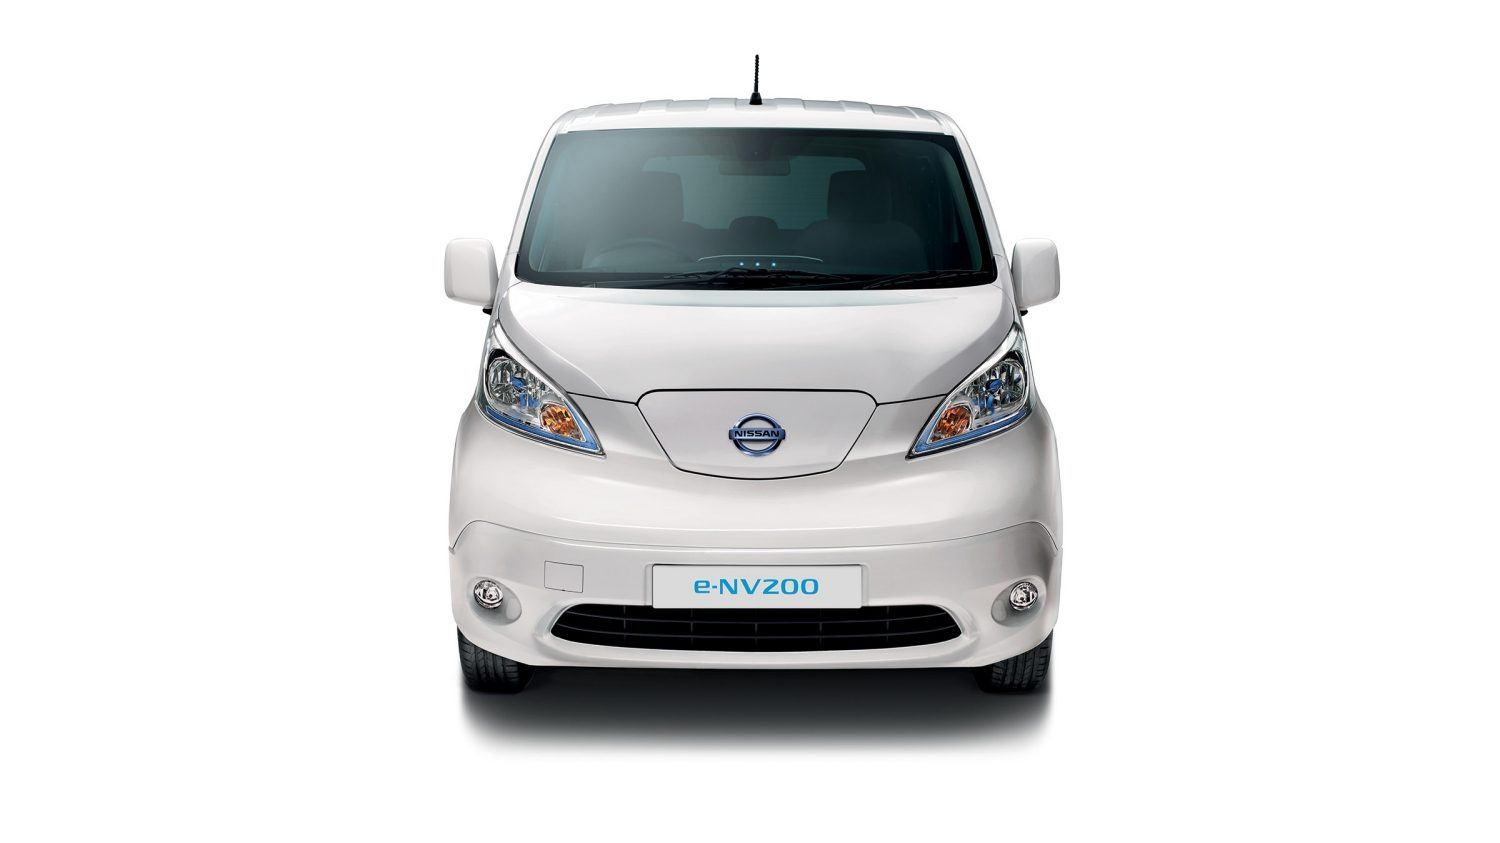 Nissan e-NV200 | Combi | Electric vehicle exterior